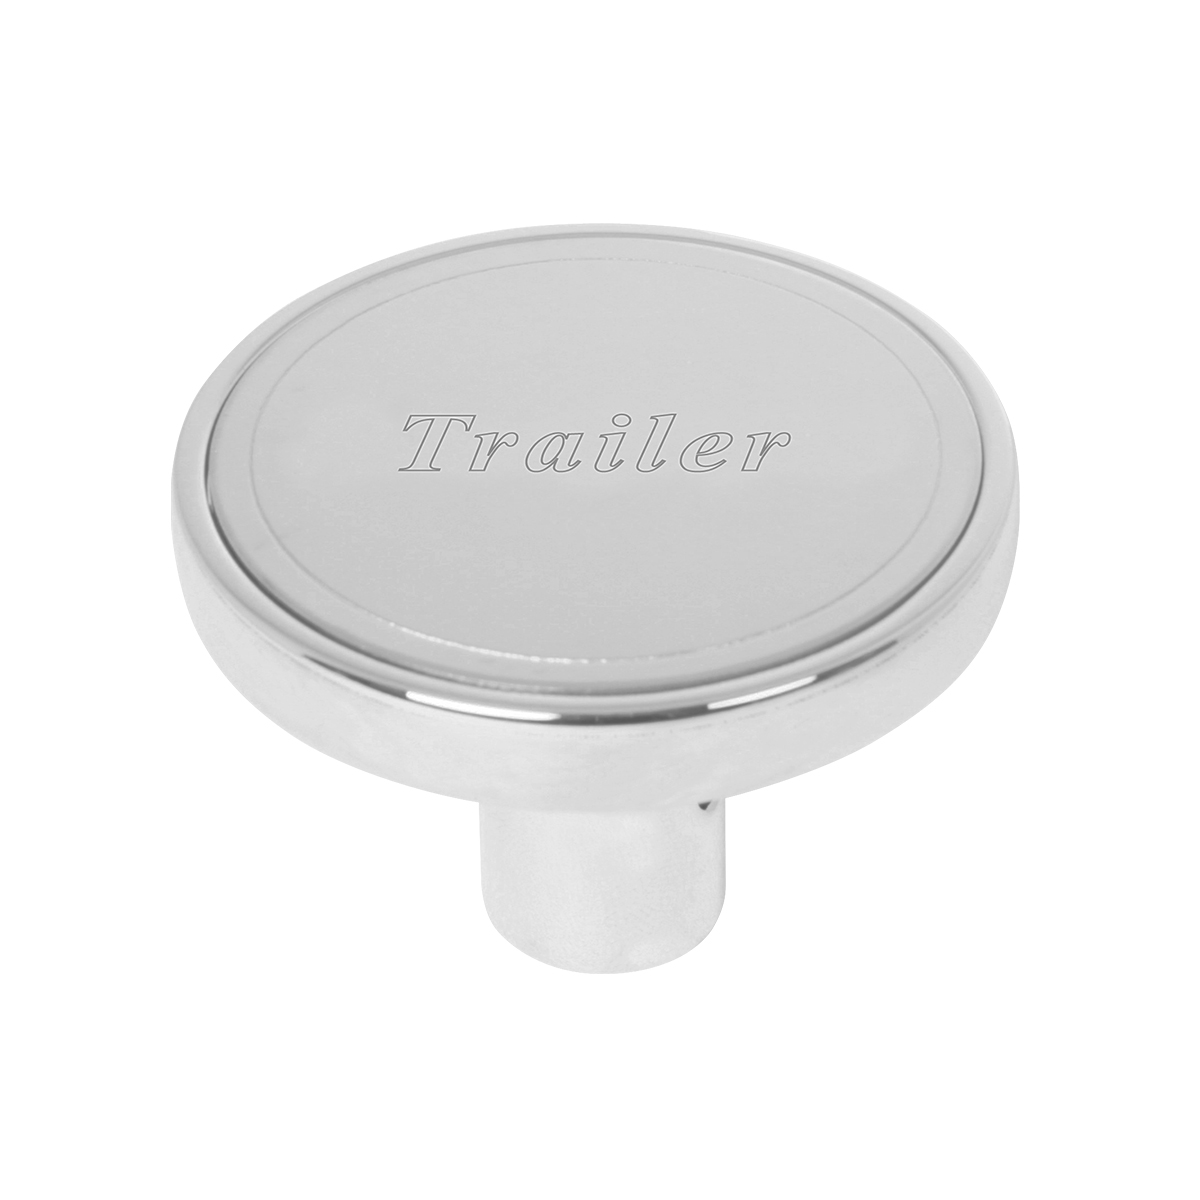 "#96237 Air Valve Control Knob w/Stainless Steel Plate (1 ¹⁵∕₁₆"" dia. x 1 ⁵∕₁₆"" (H) x ⅜"" I.D. ) - Trailer"